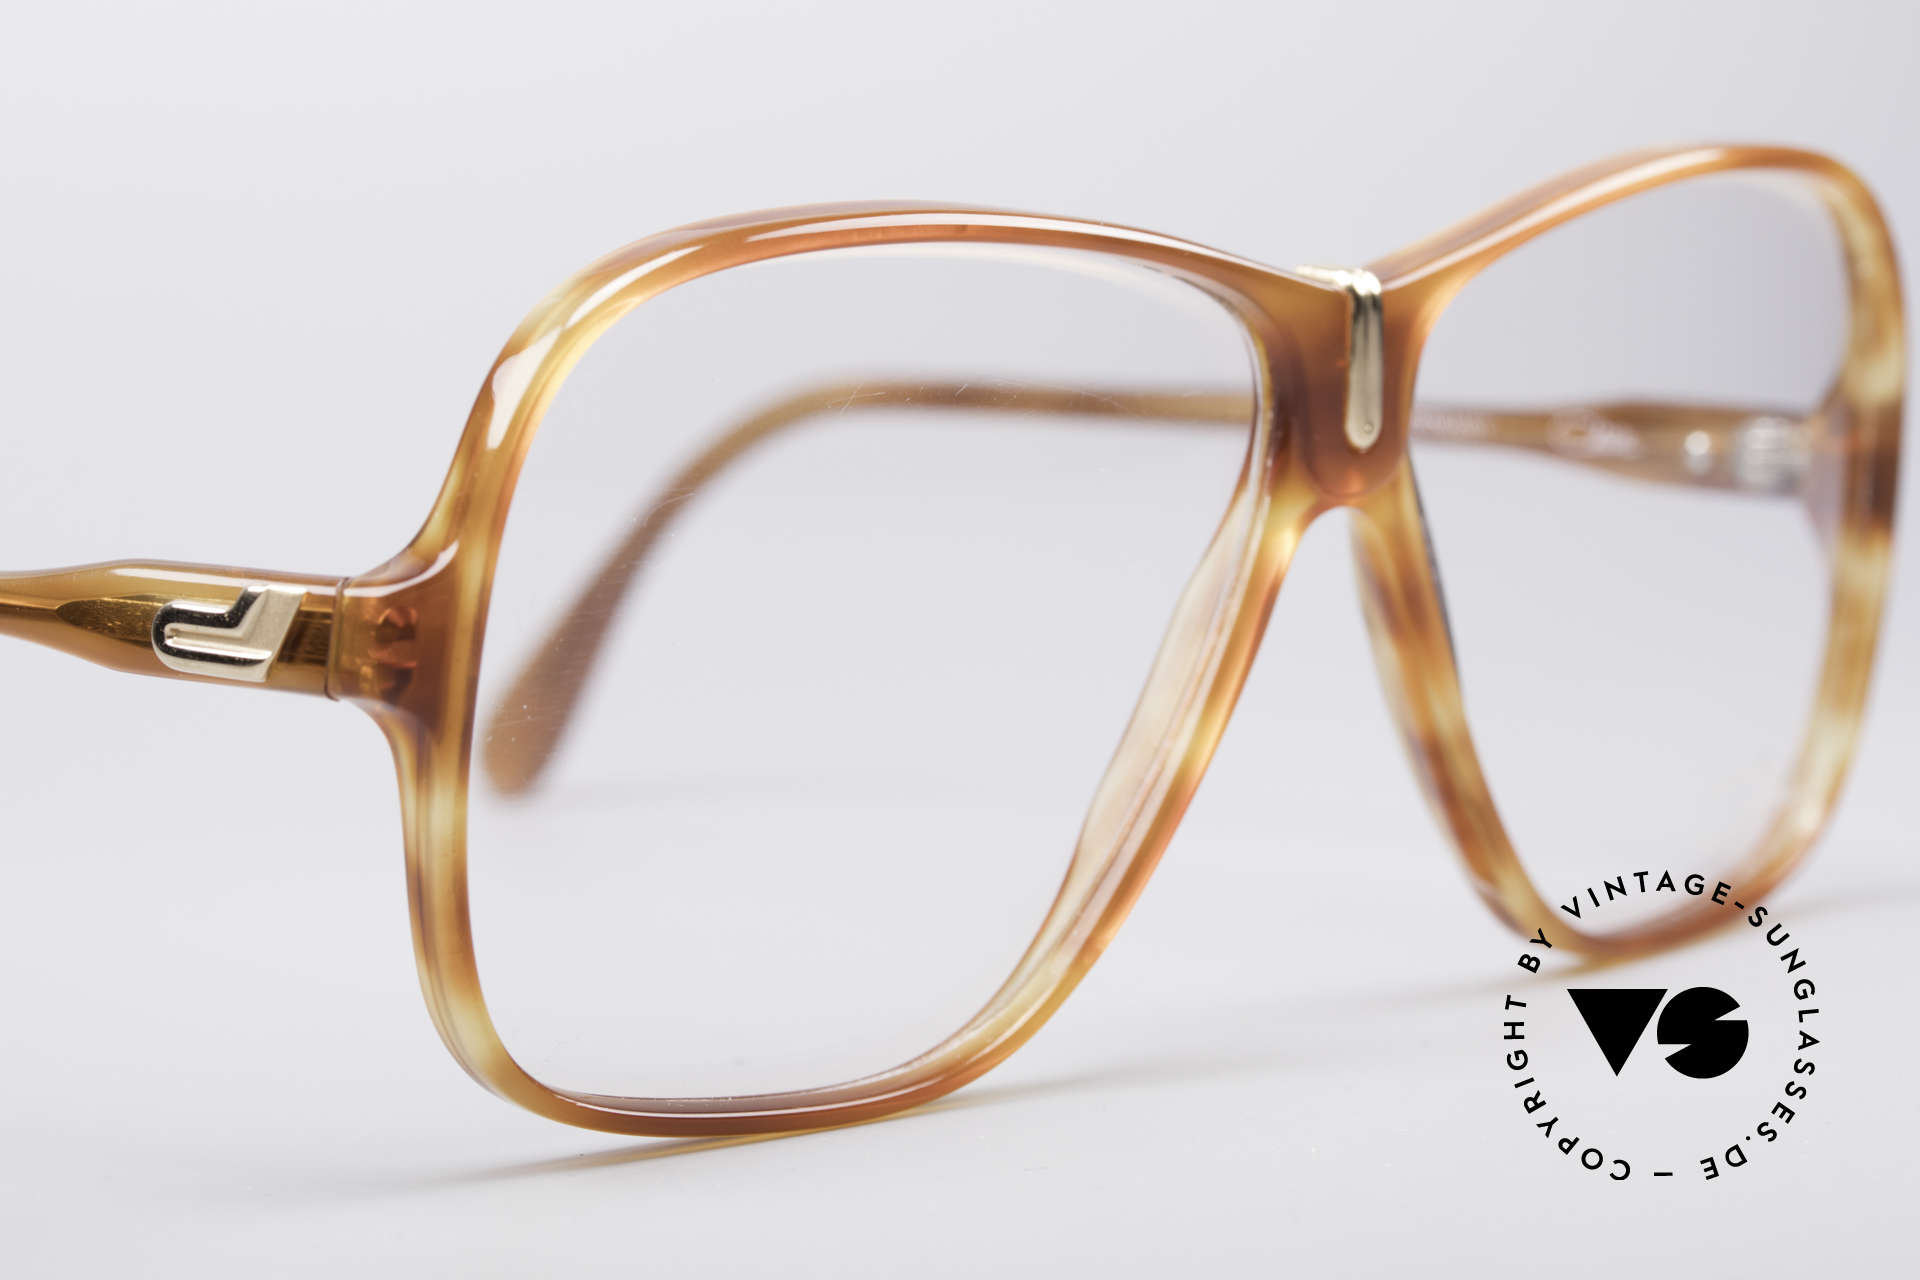 Cazal 621 West Germany Cazal Glasses, NO RETRO EYEWEAR, but 100% vintage stock !!, Made for Men